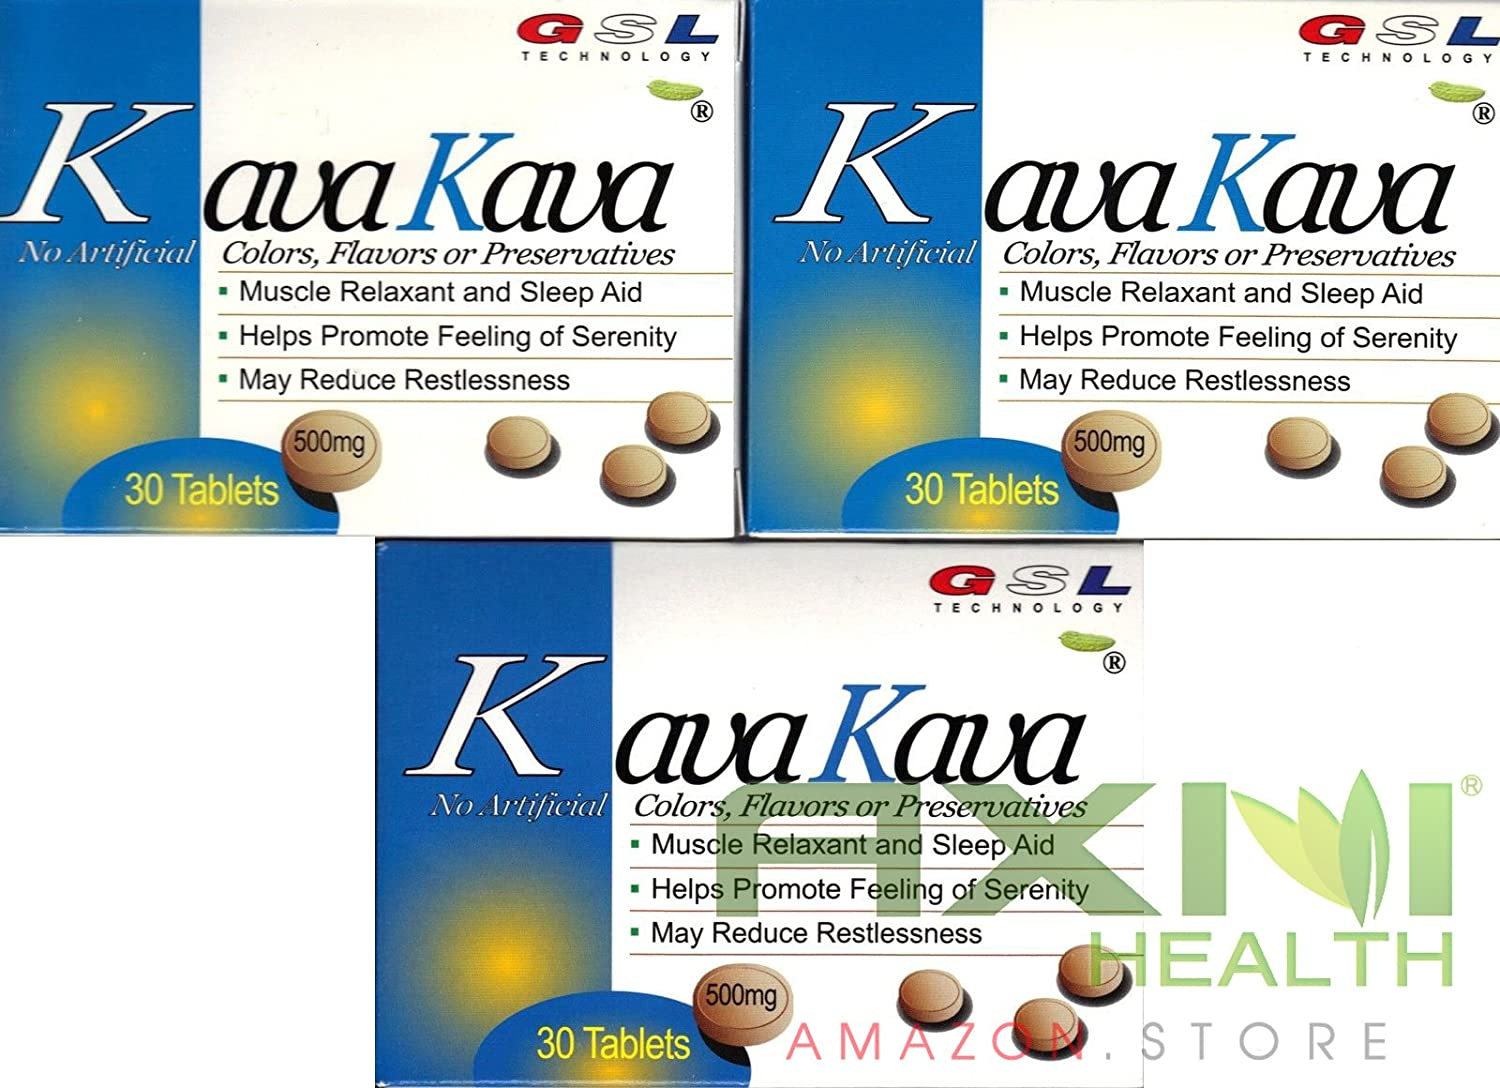 (3 Packs) Kava Kava Muscle Relaxant and Sleep Aid 500mg Each Tablet (30ct Each)